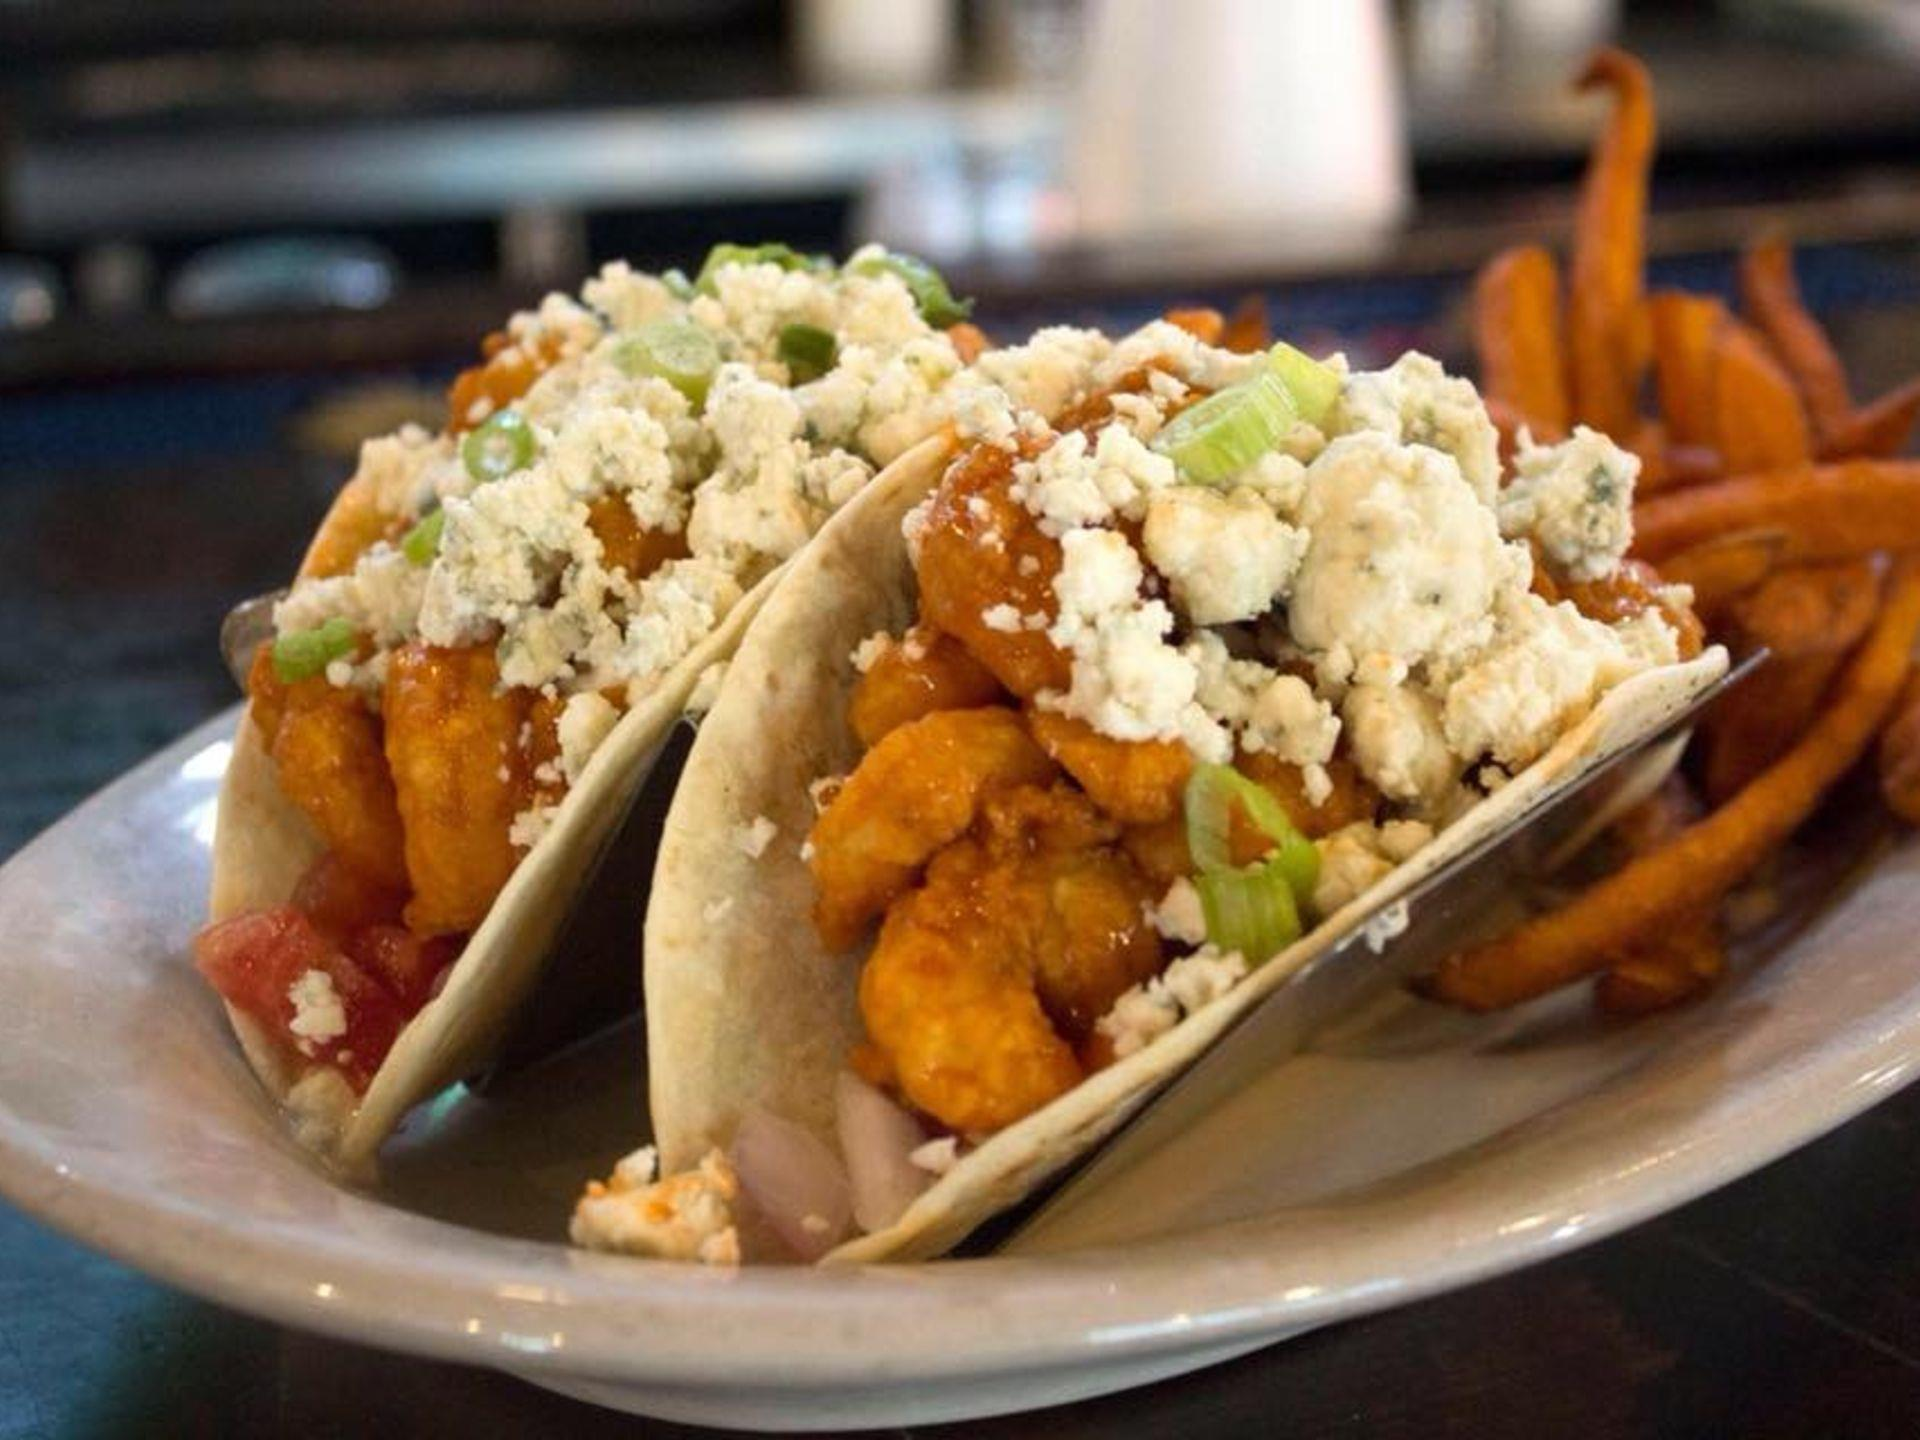 Shrimp tacos with feta cheese and sweet potato fries